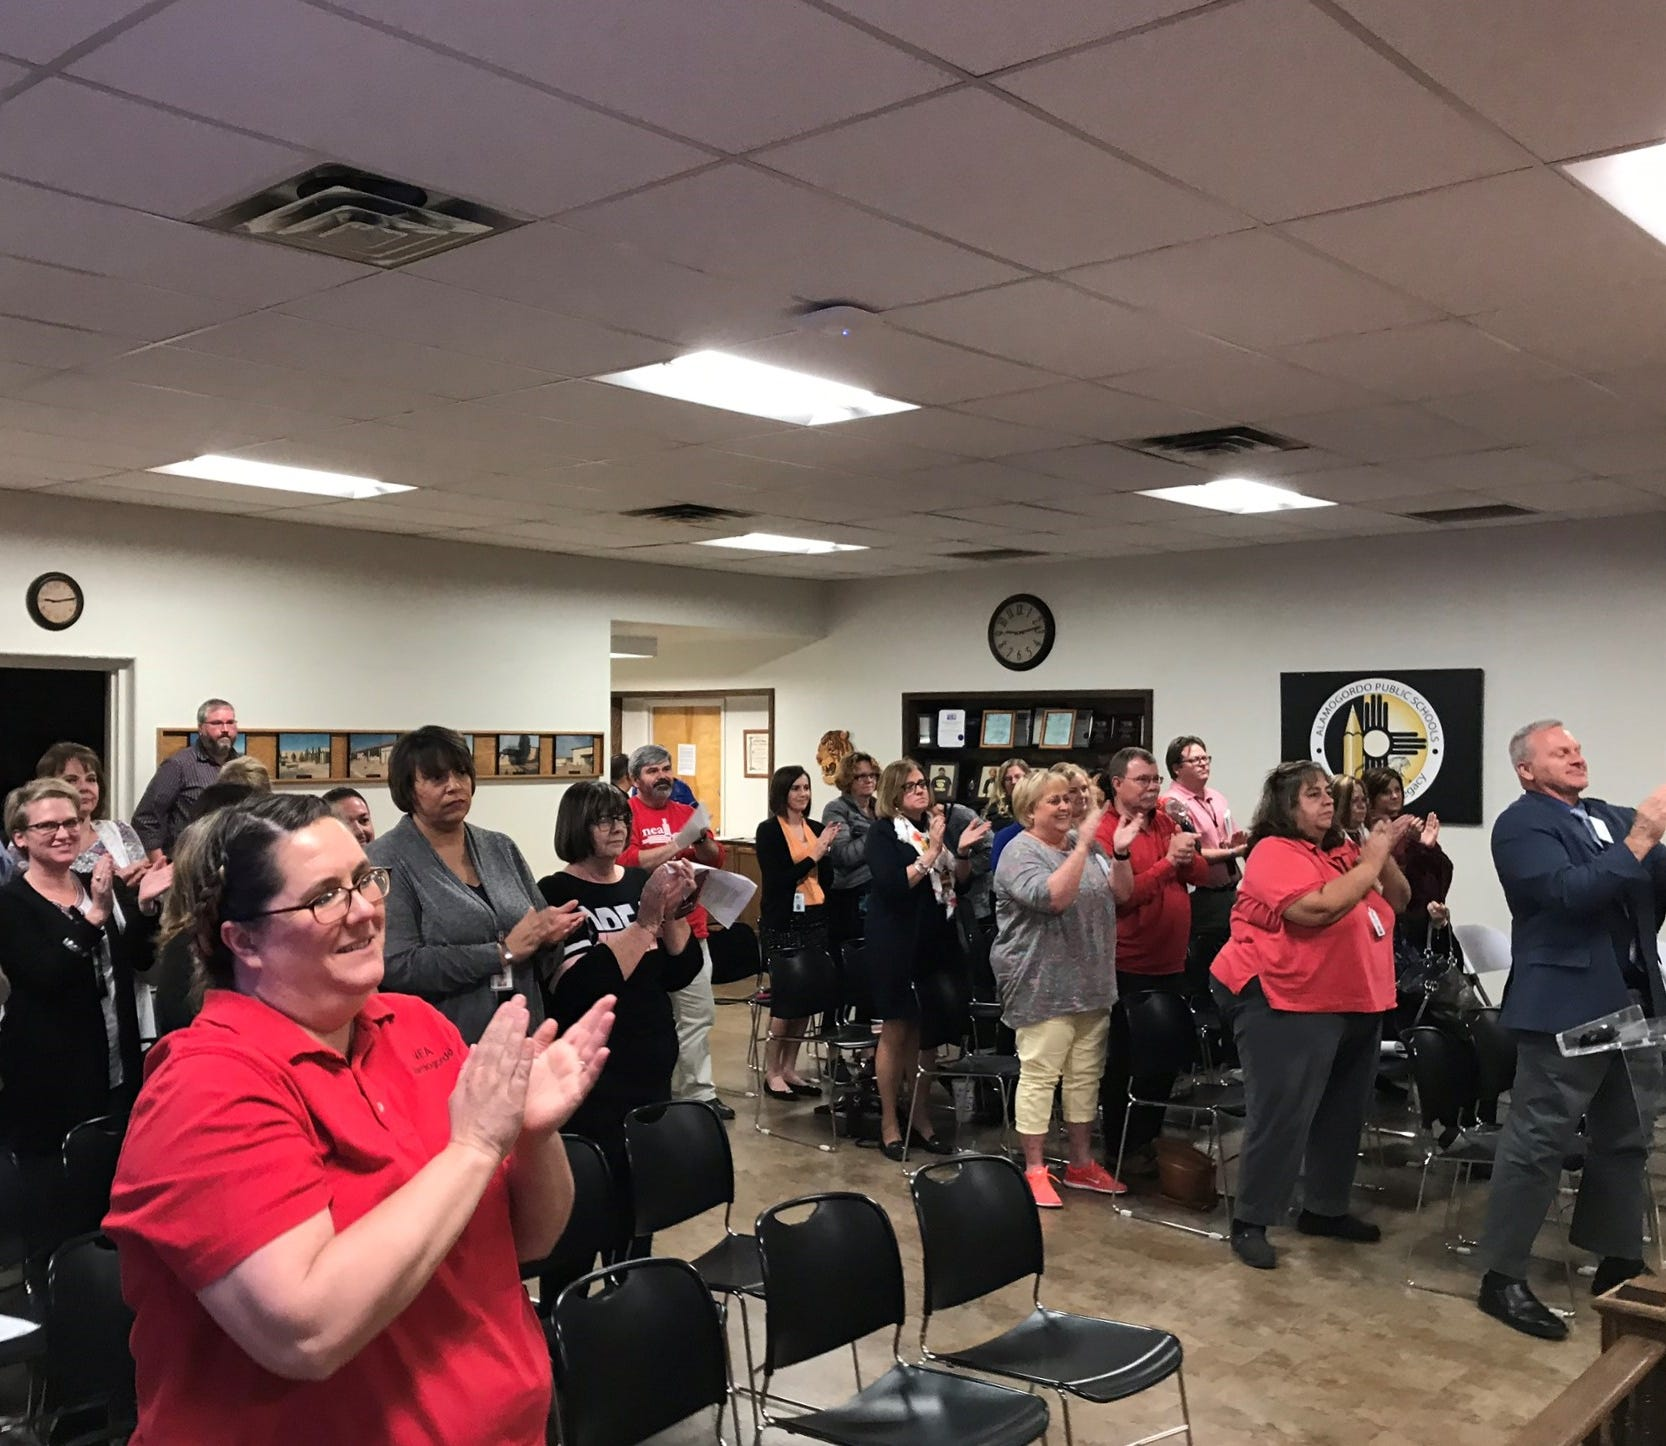 The Alamogordo Public School District board meeting room erupted in a standing ovation for the board's decision to name Jerrett Perry APS superintendent. Perry has been serving as acting/interim superintendent since September.